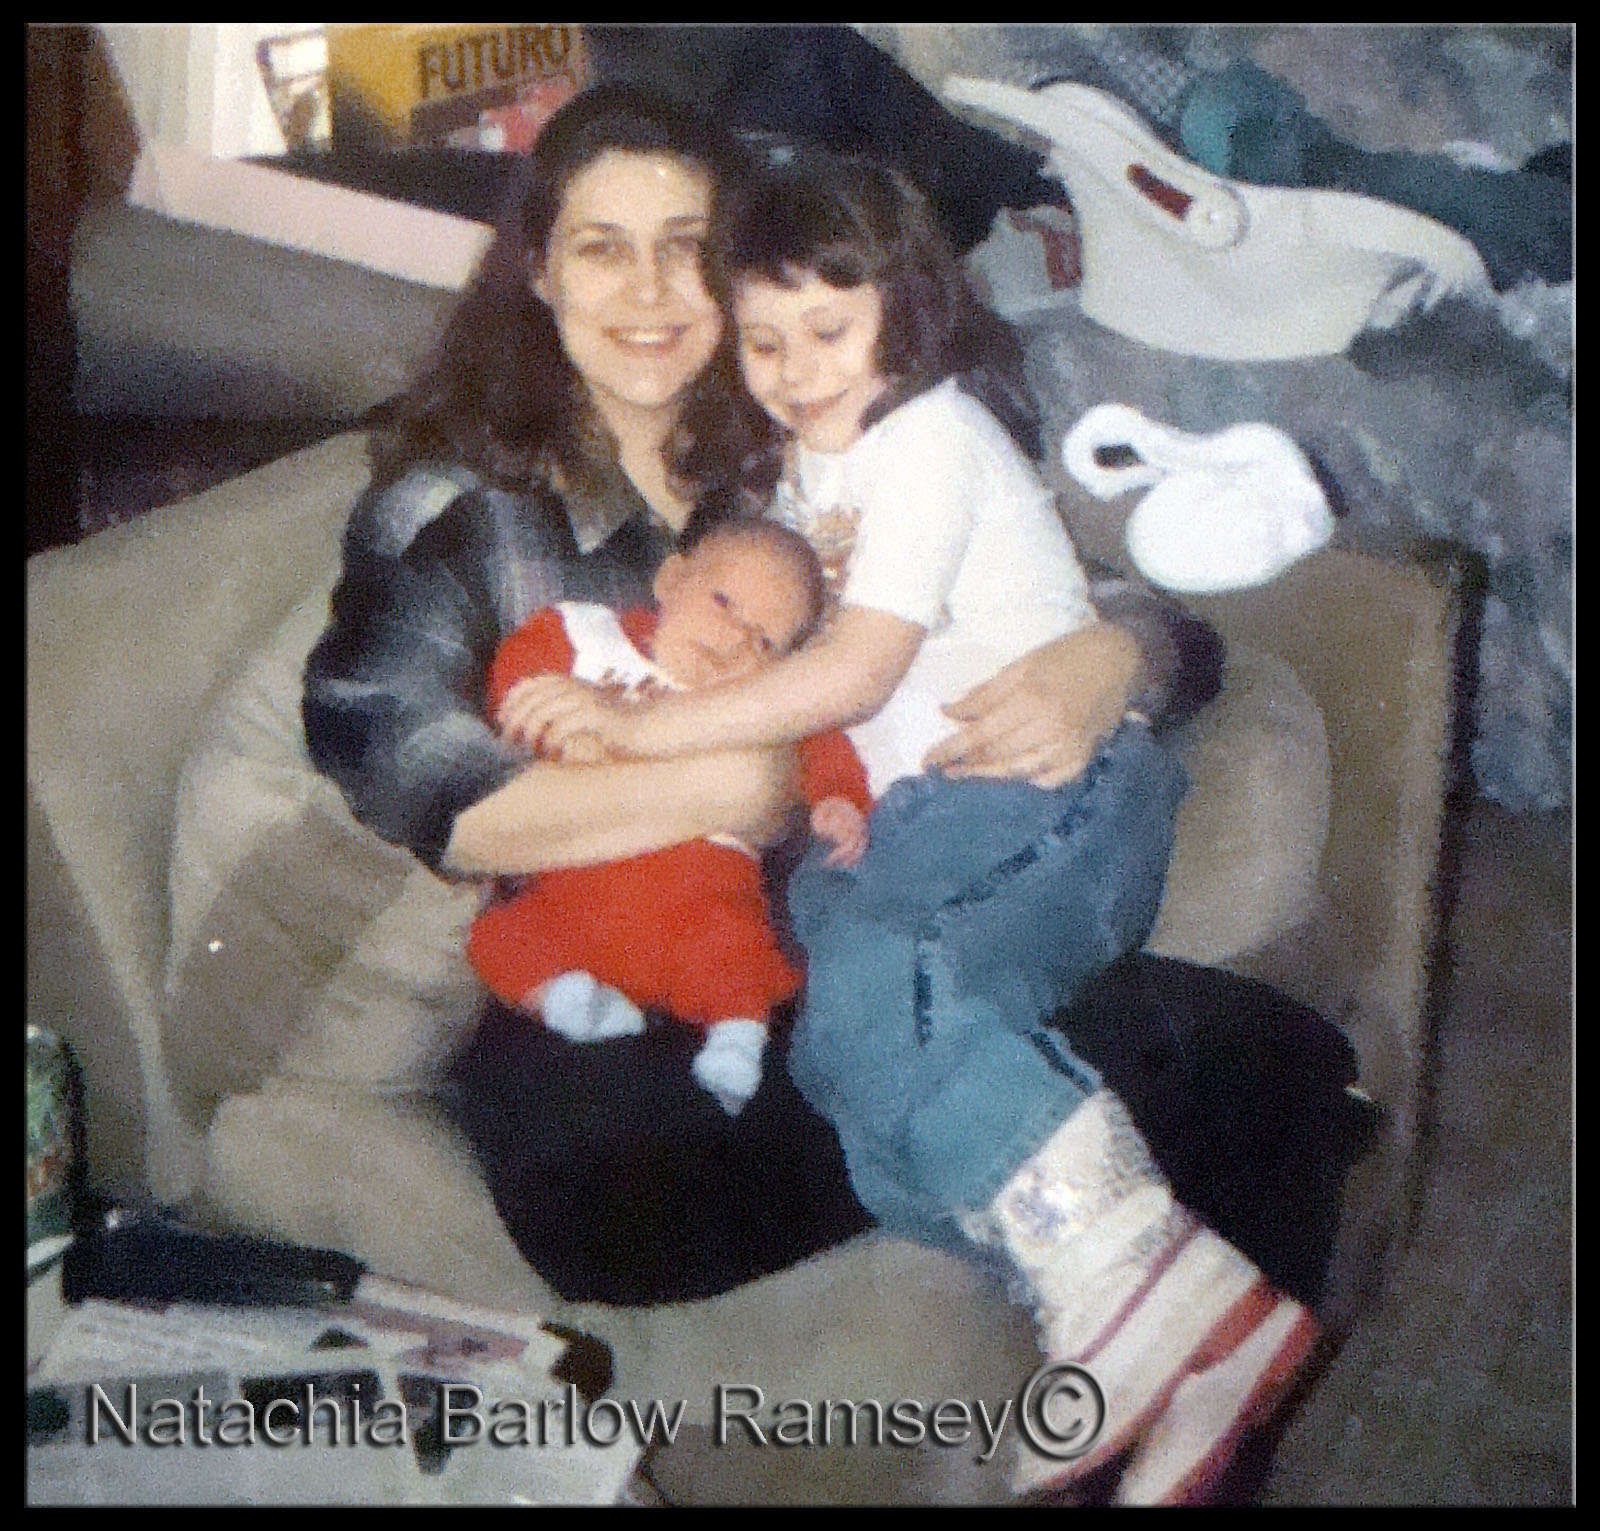 Natachia Barlow Ramsey, Postpartum Psychosis,Hunter,  Christopher Ramsey, Natachia and Chris Married